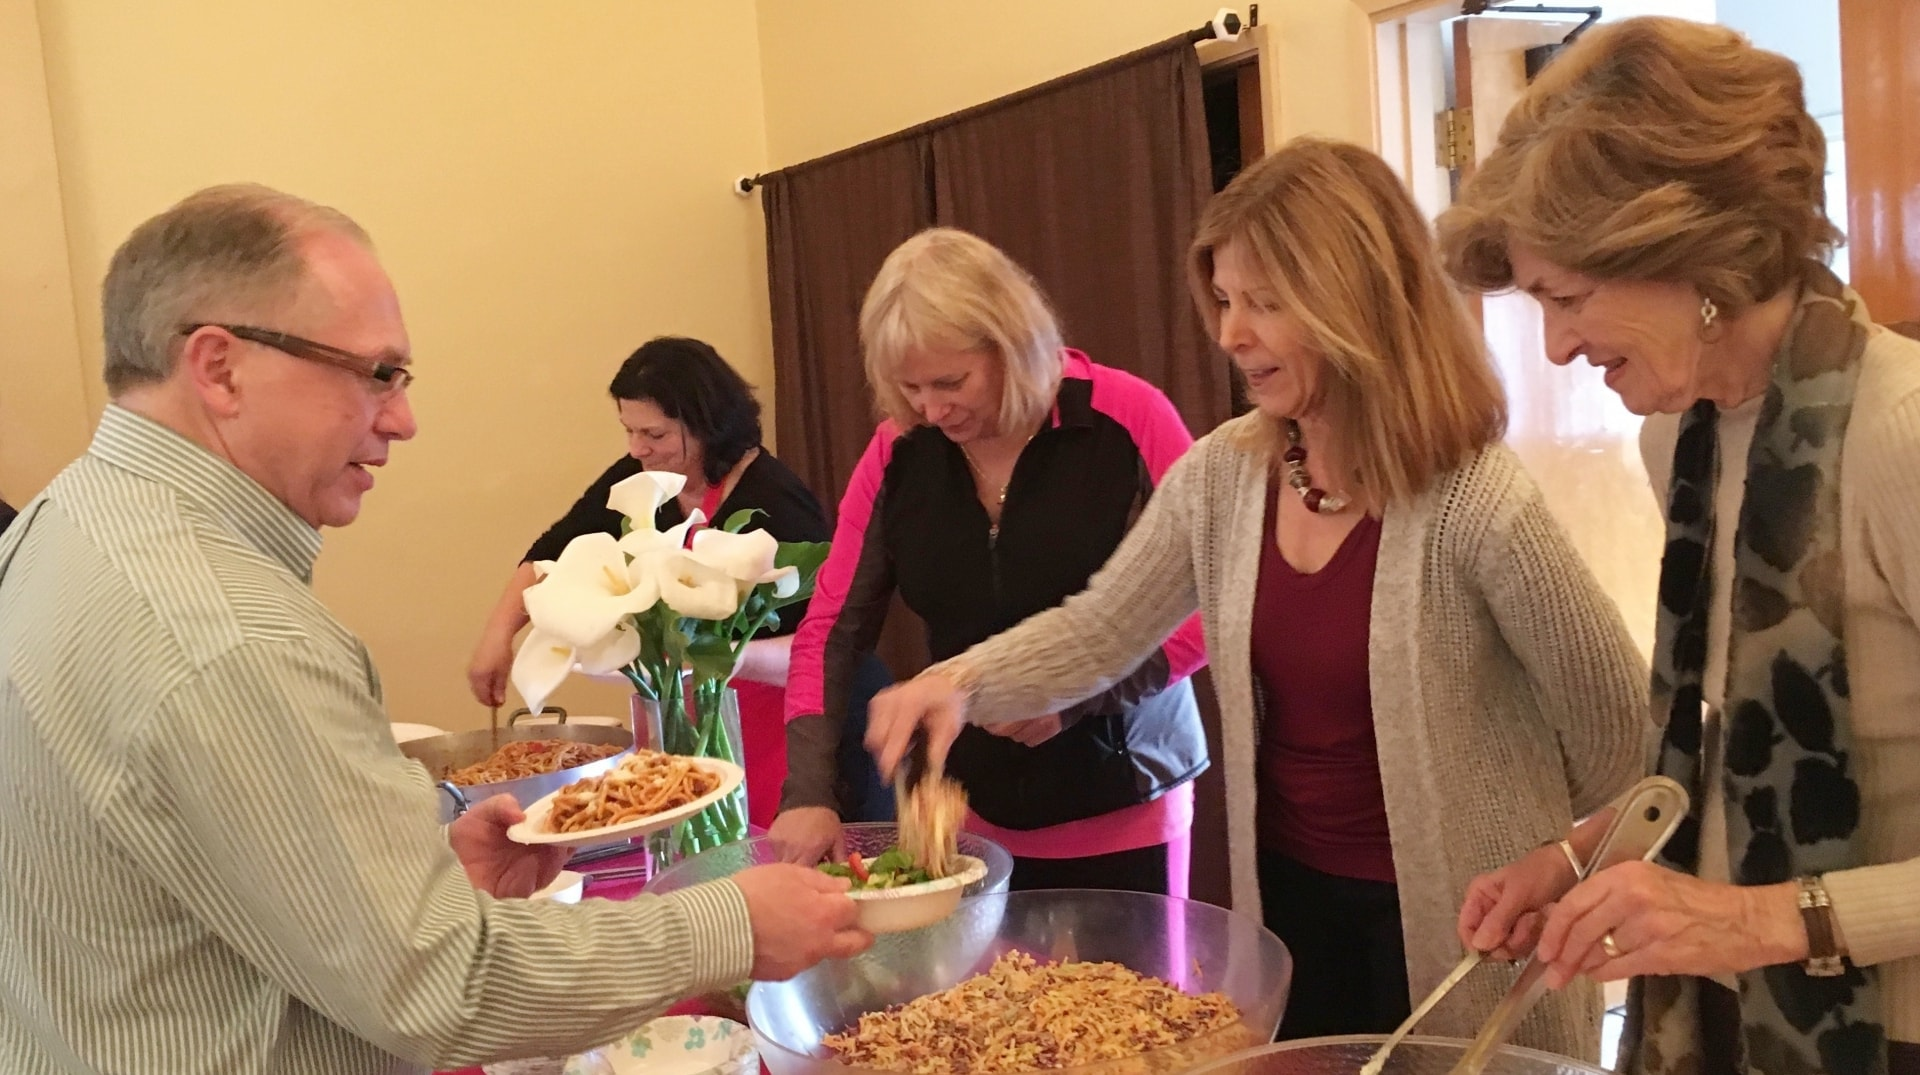 Hospitality in action at All Saints' Episcopal Church in Carmel, CA